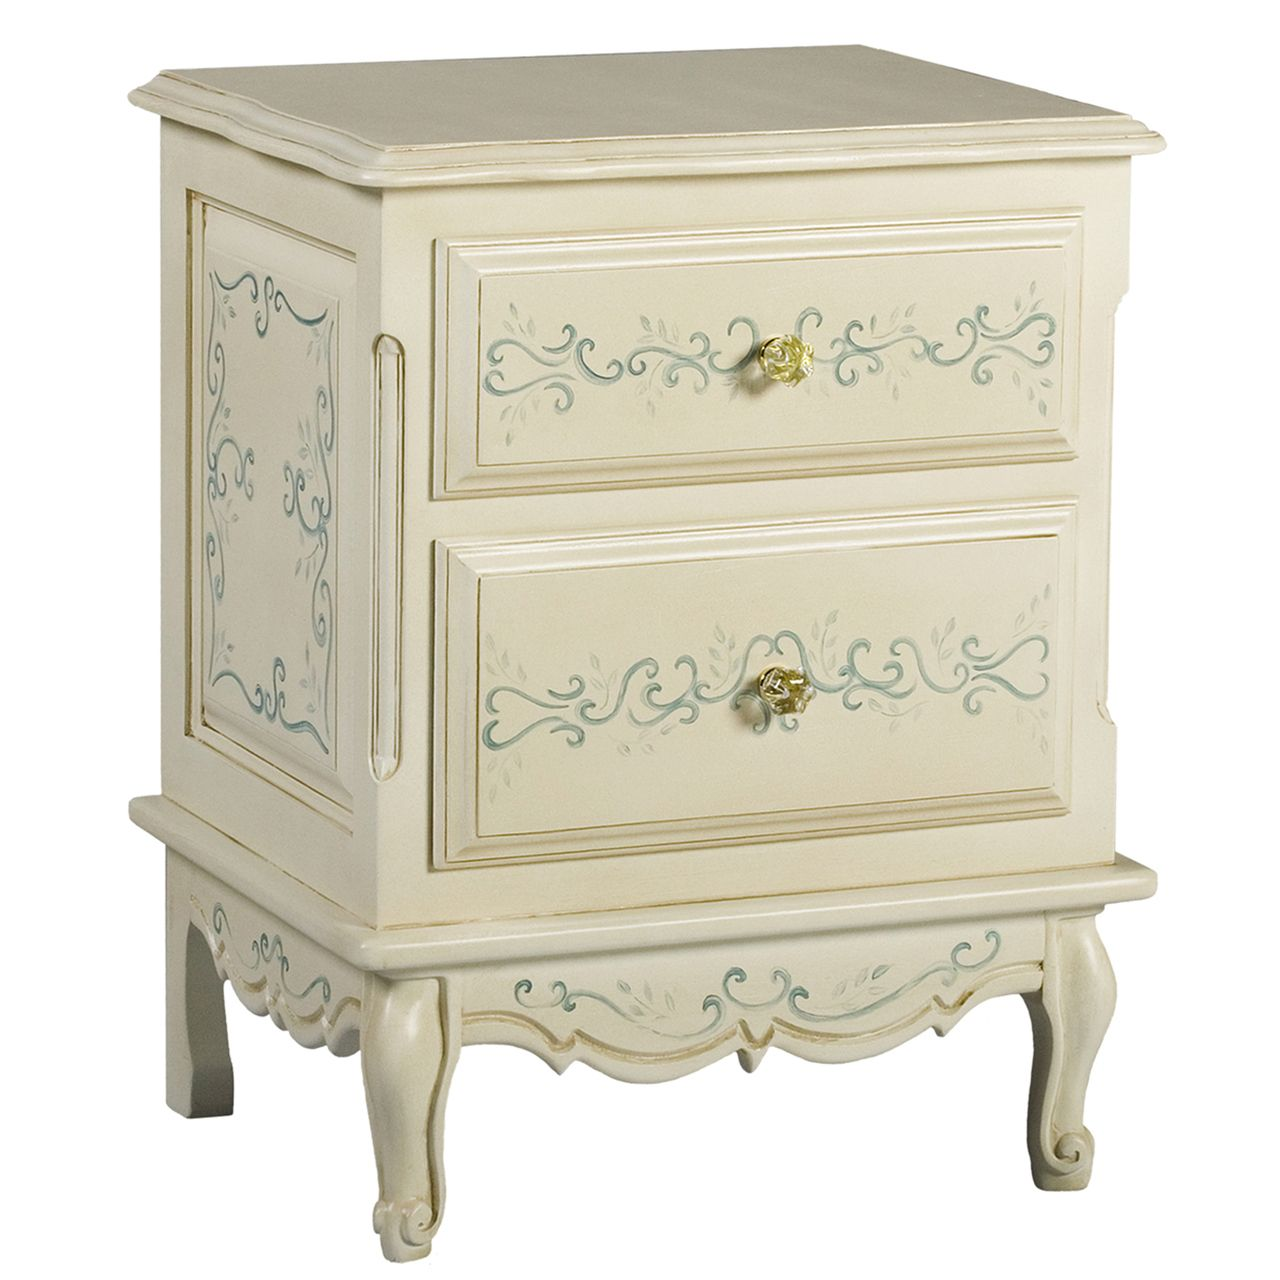 FRENCH NIGHT TABLE Bordeaux Toile